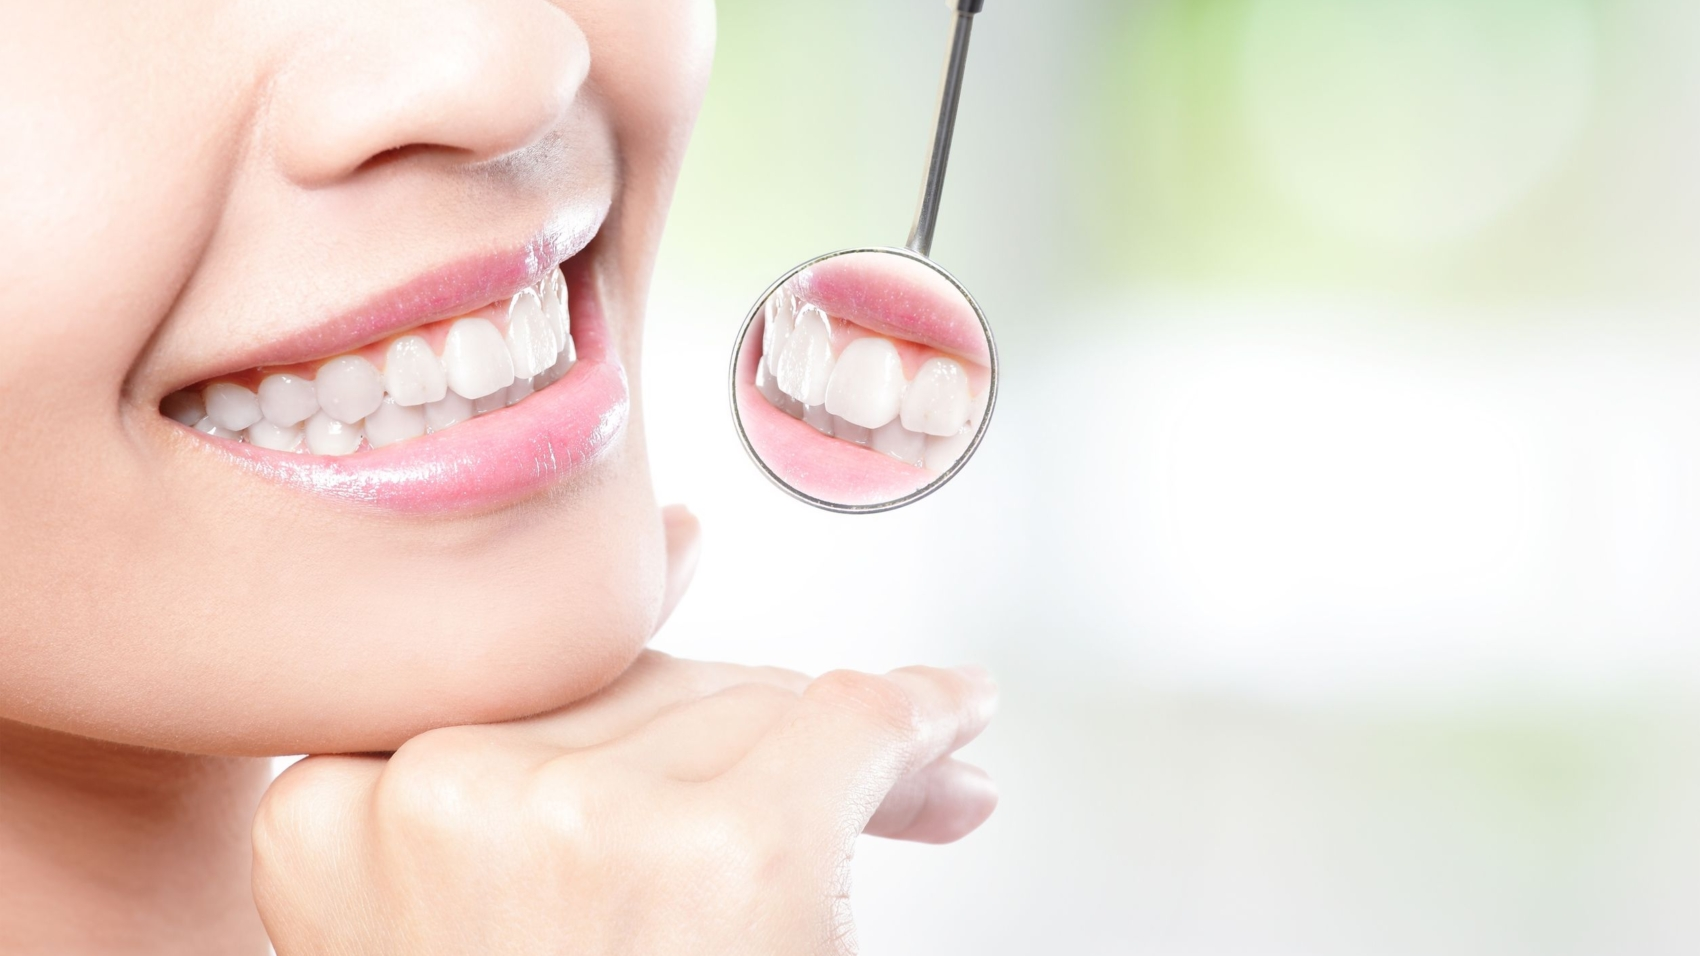 20481718 - healthy woman teeth and a dentist mouth mirror with nature green background